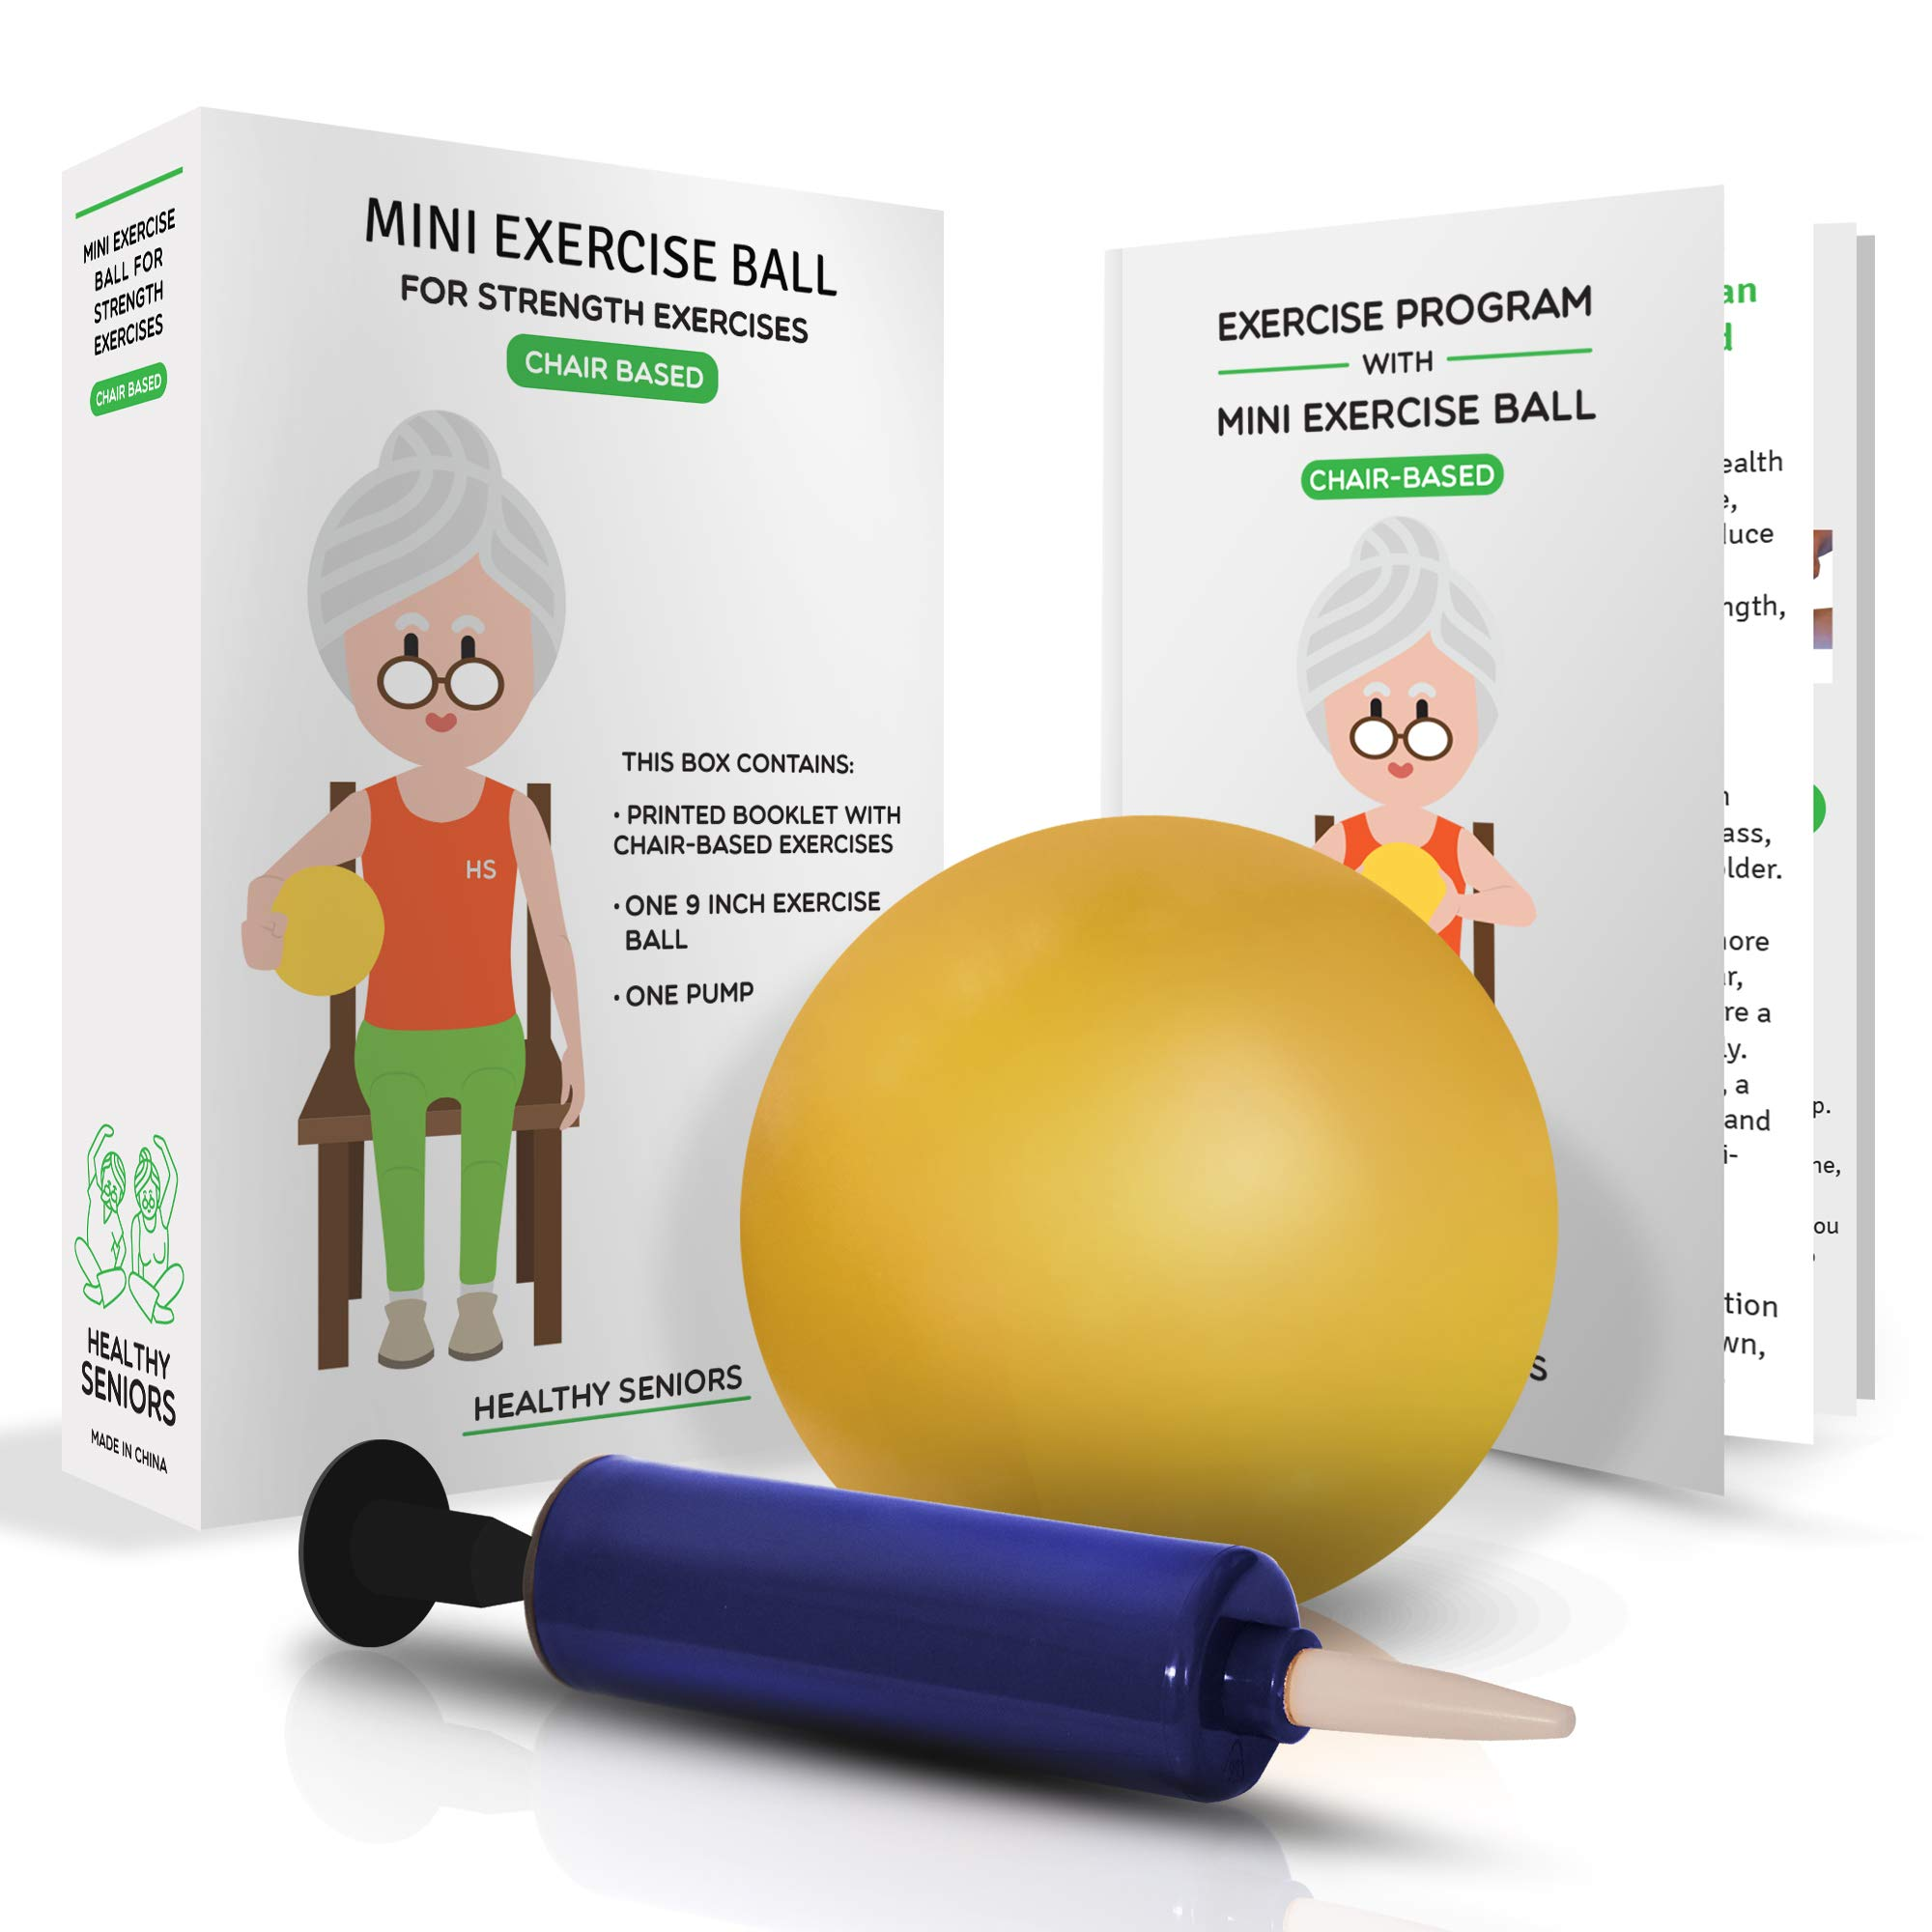 Healthy Seniors Chair Exercise Program with Mini Exercise Ball, Pump and Printed Exercise Guide. Ideal for Rehab or Physical Therapy. Great Gift for a Grandparent